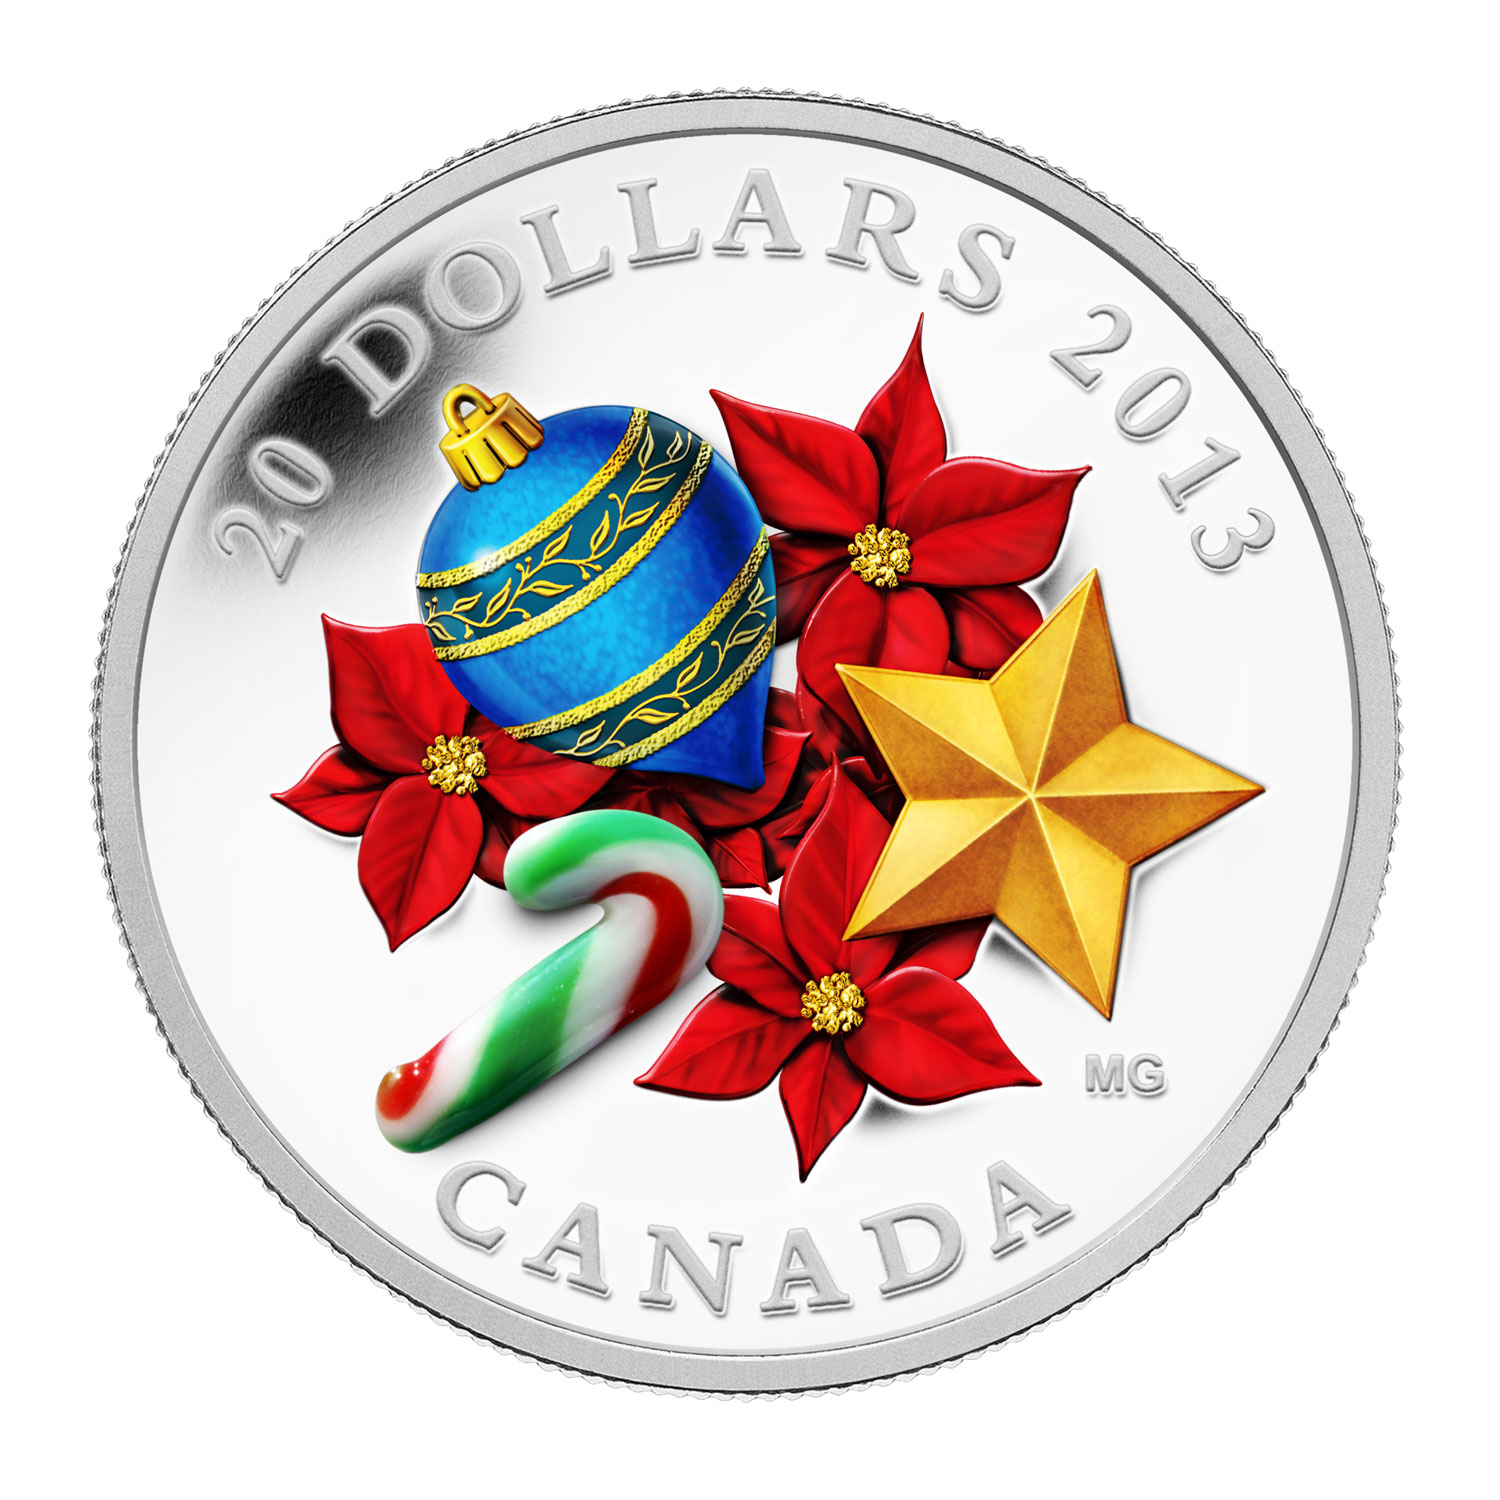 2013 1 oz Silver Canadian $20 Venetian Glass Candy Cane